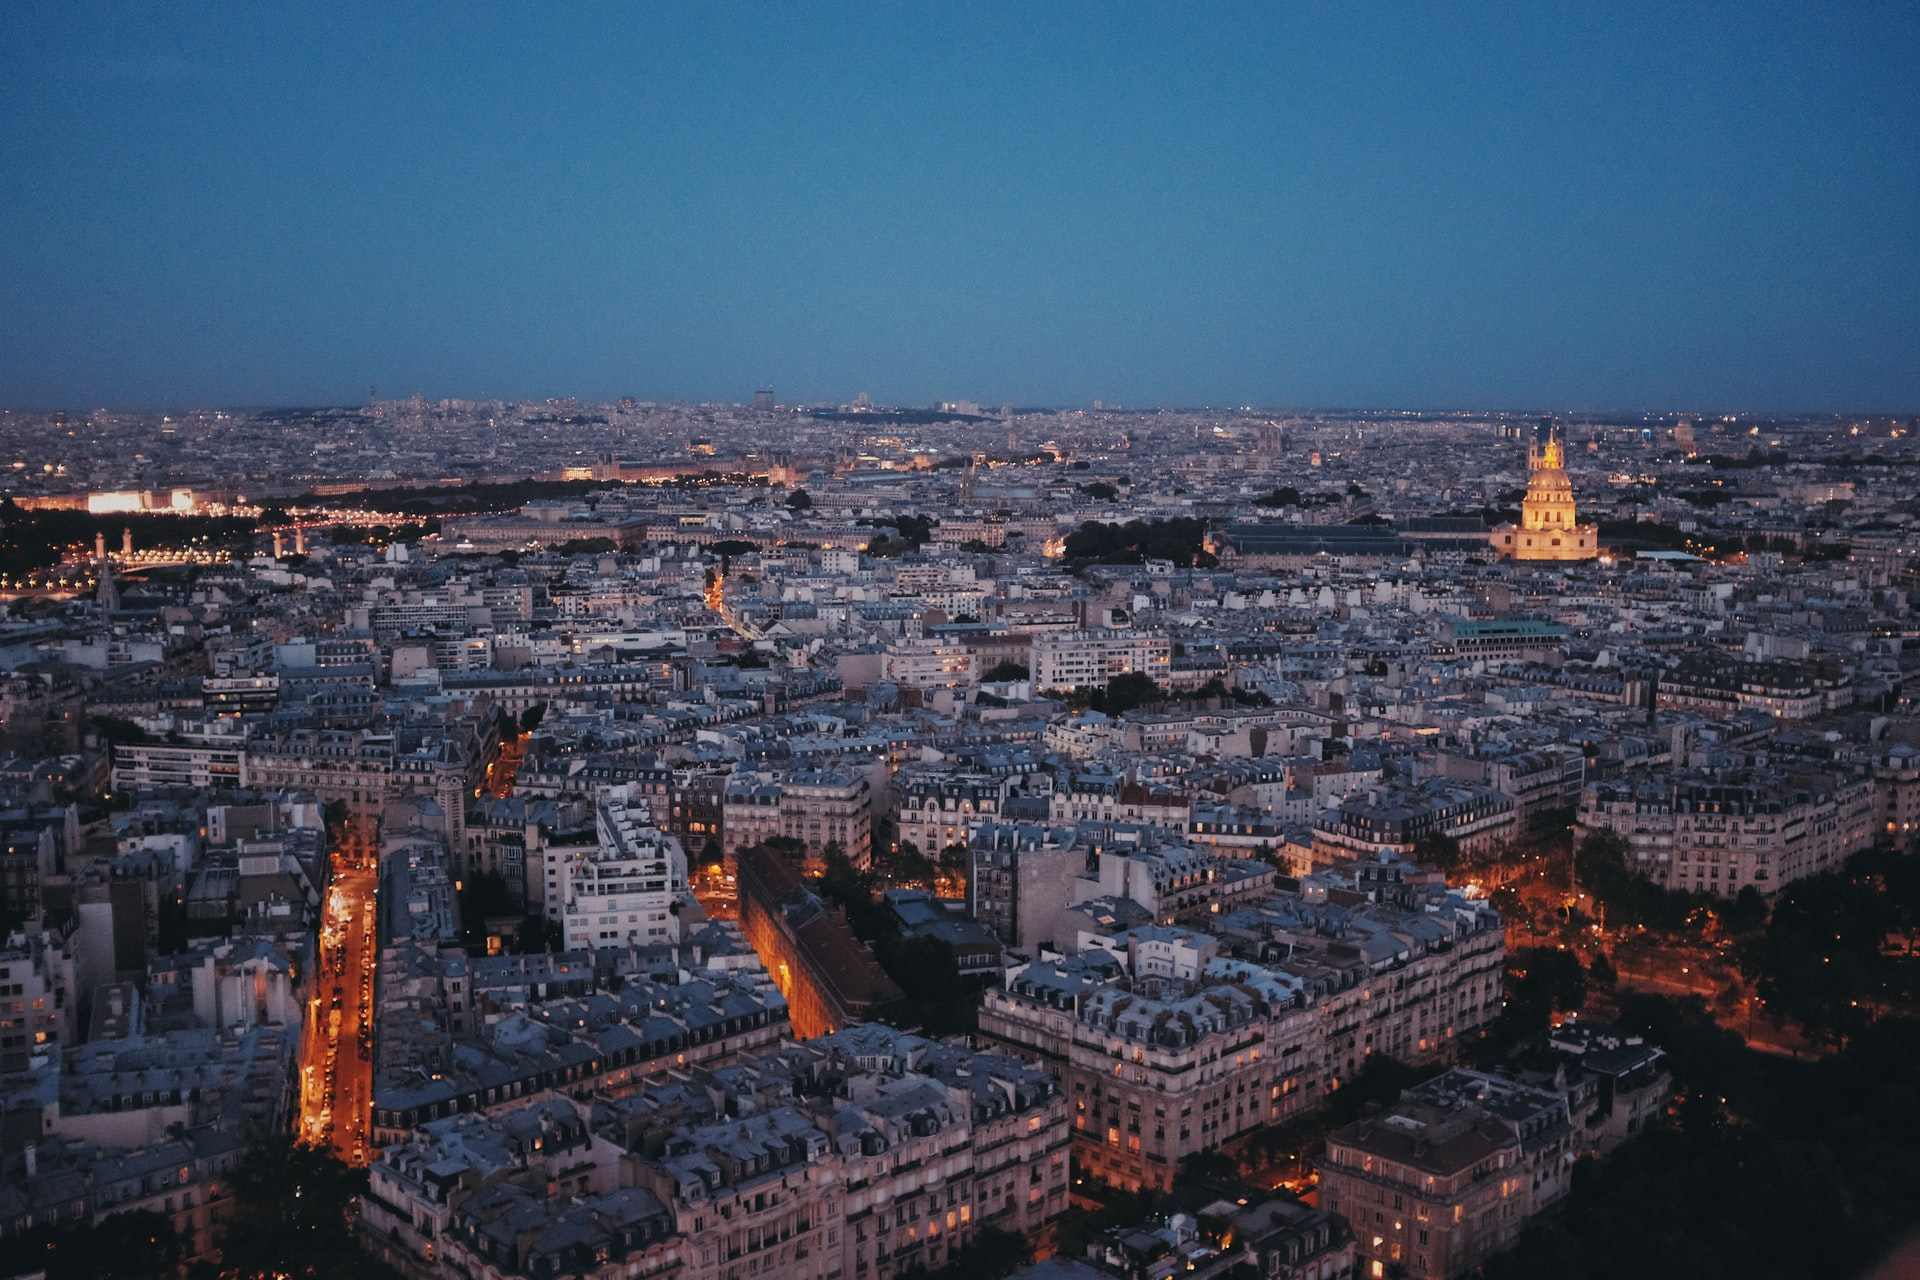 Night view from the Eiffel Tower